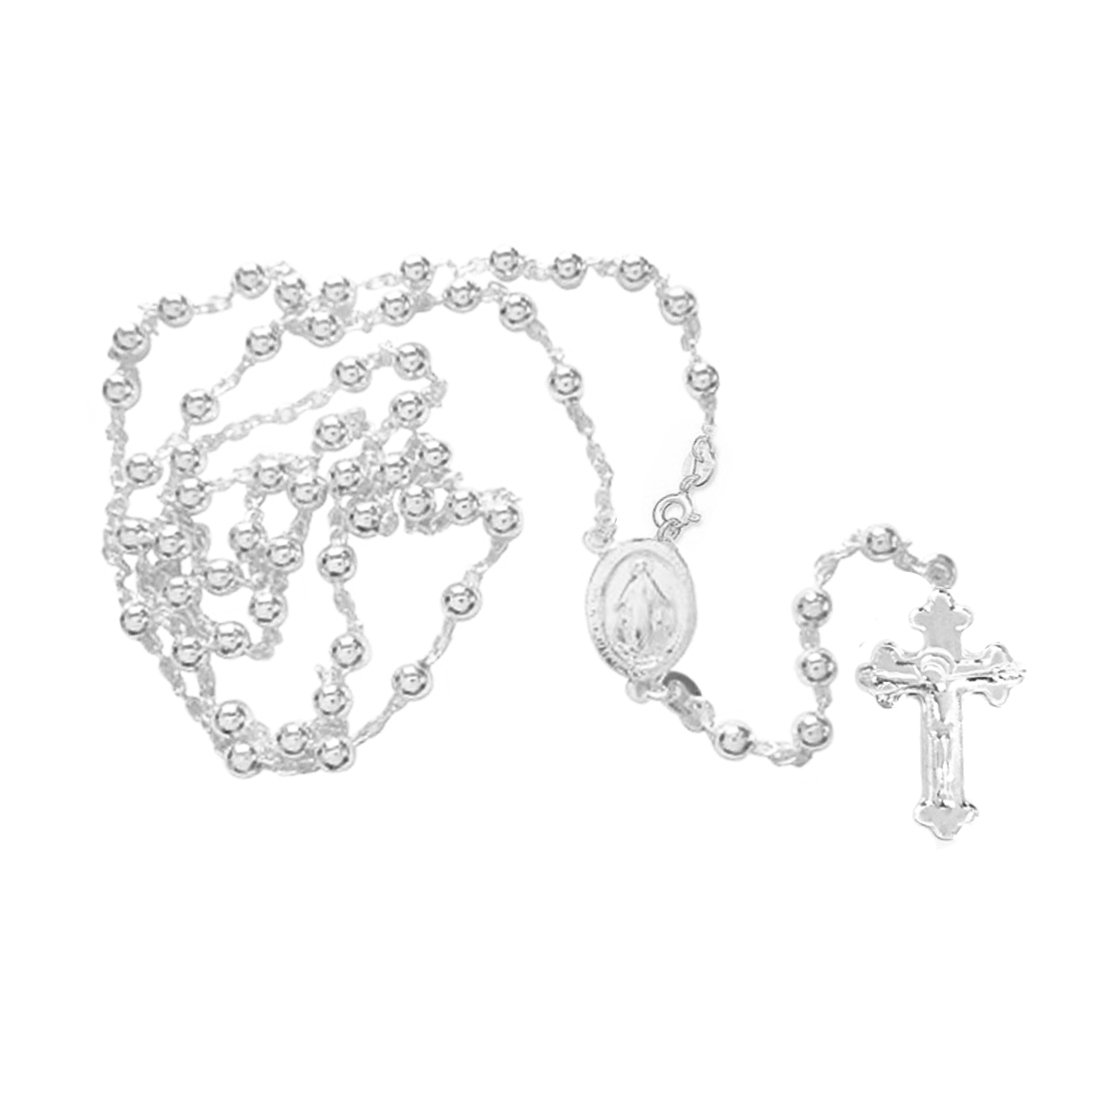 Ritastephens Sterling Silver or Gold-tone 3mm Rosary Bead Necklace Virgin Mary Cross Made in Italy